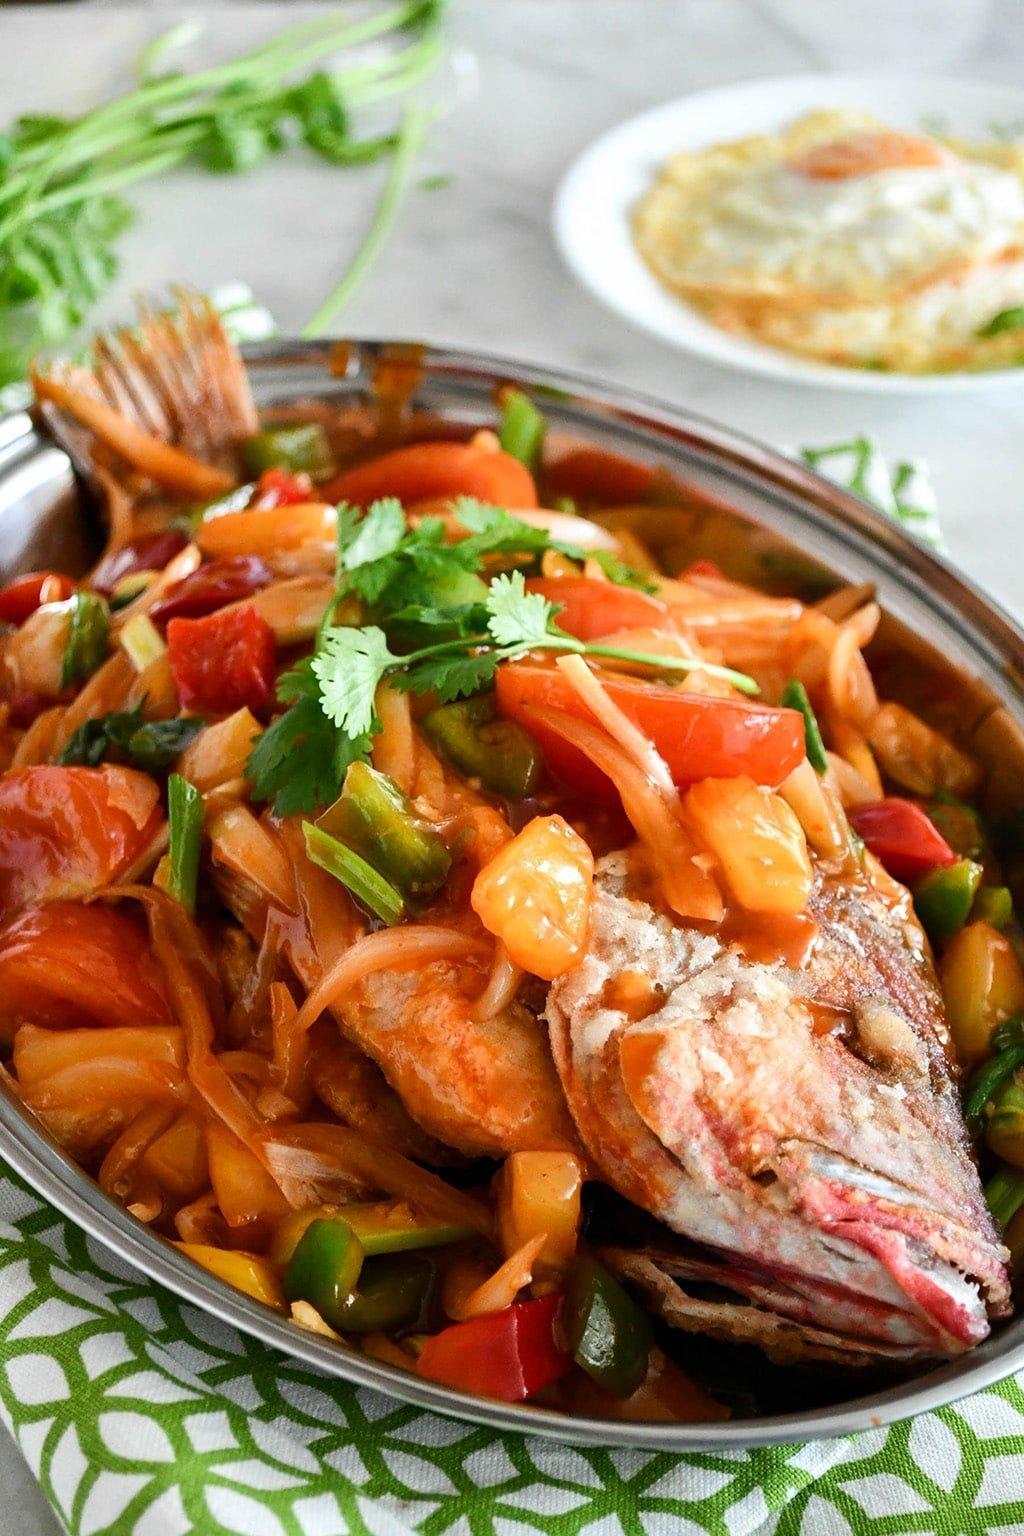 Superior Sweet and Sour Fish (Whole Fish Serving)